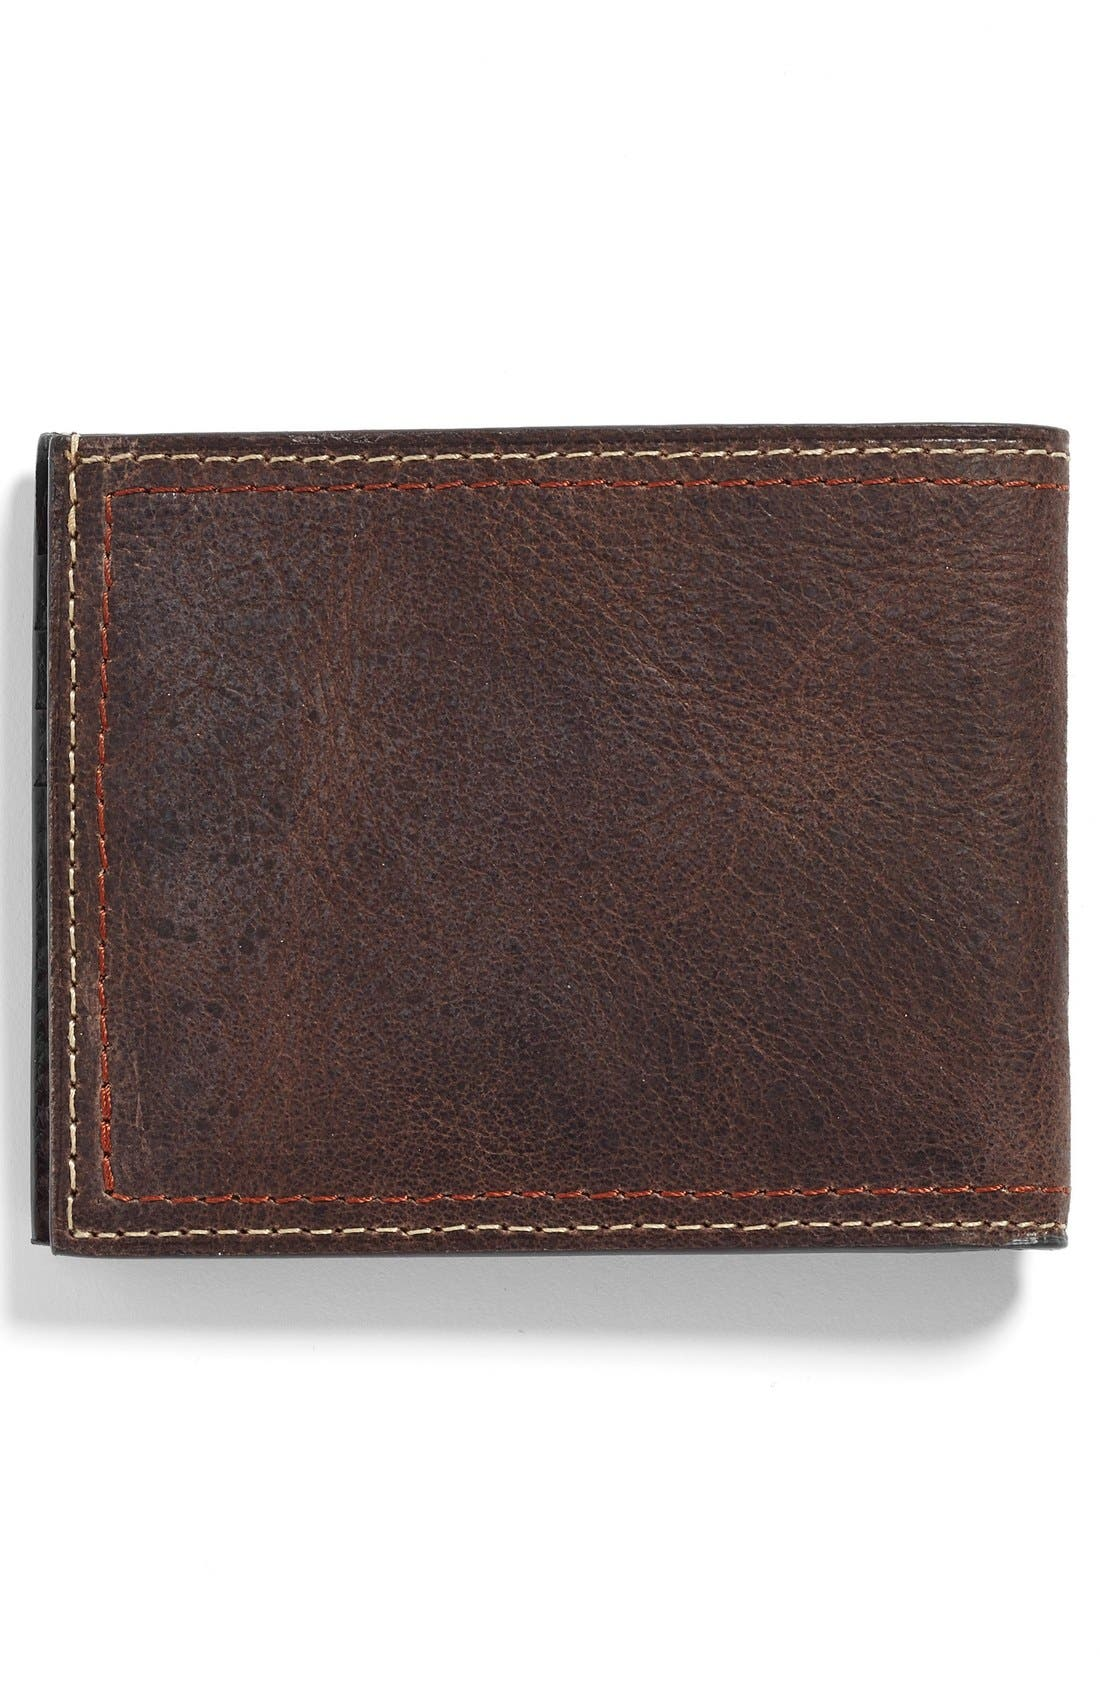 Water Buffalo Leather Wallet,                             Alternate thumbnail 3, color,                             203